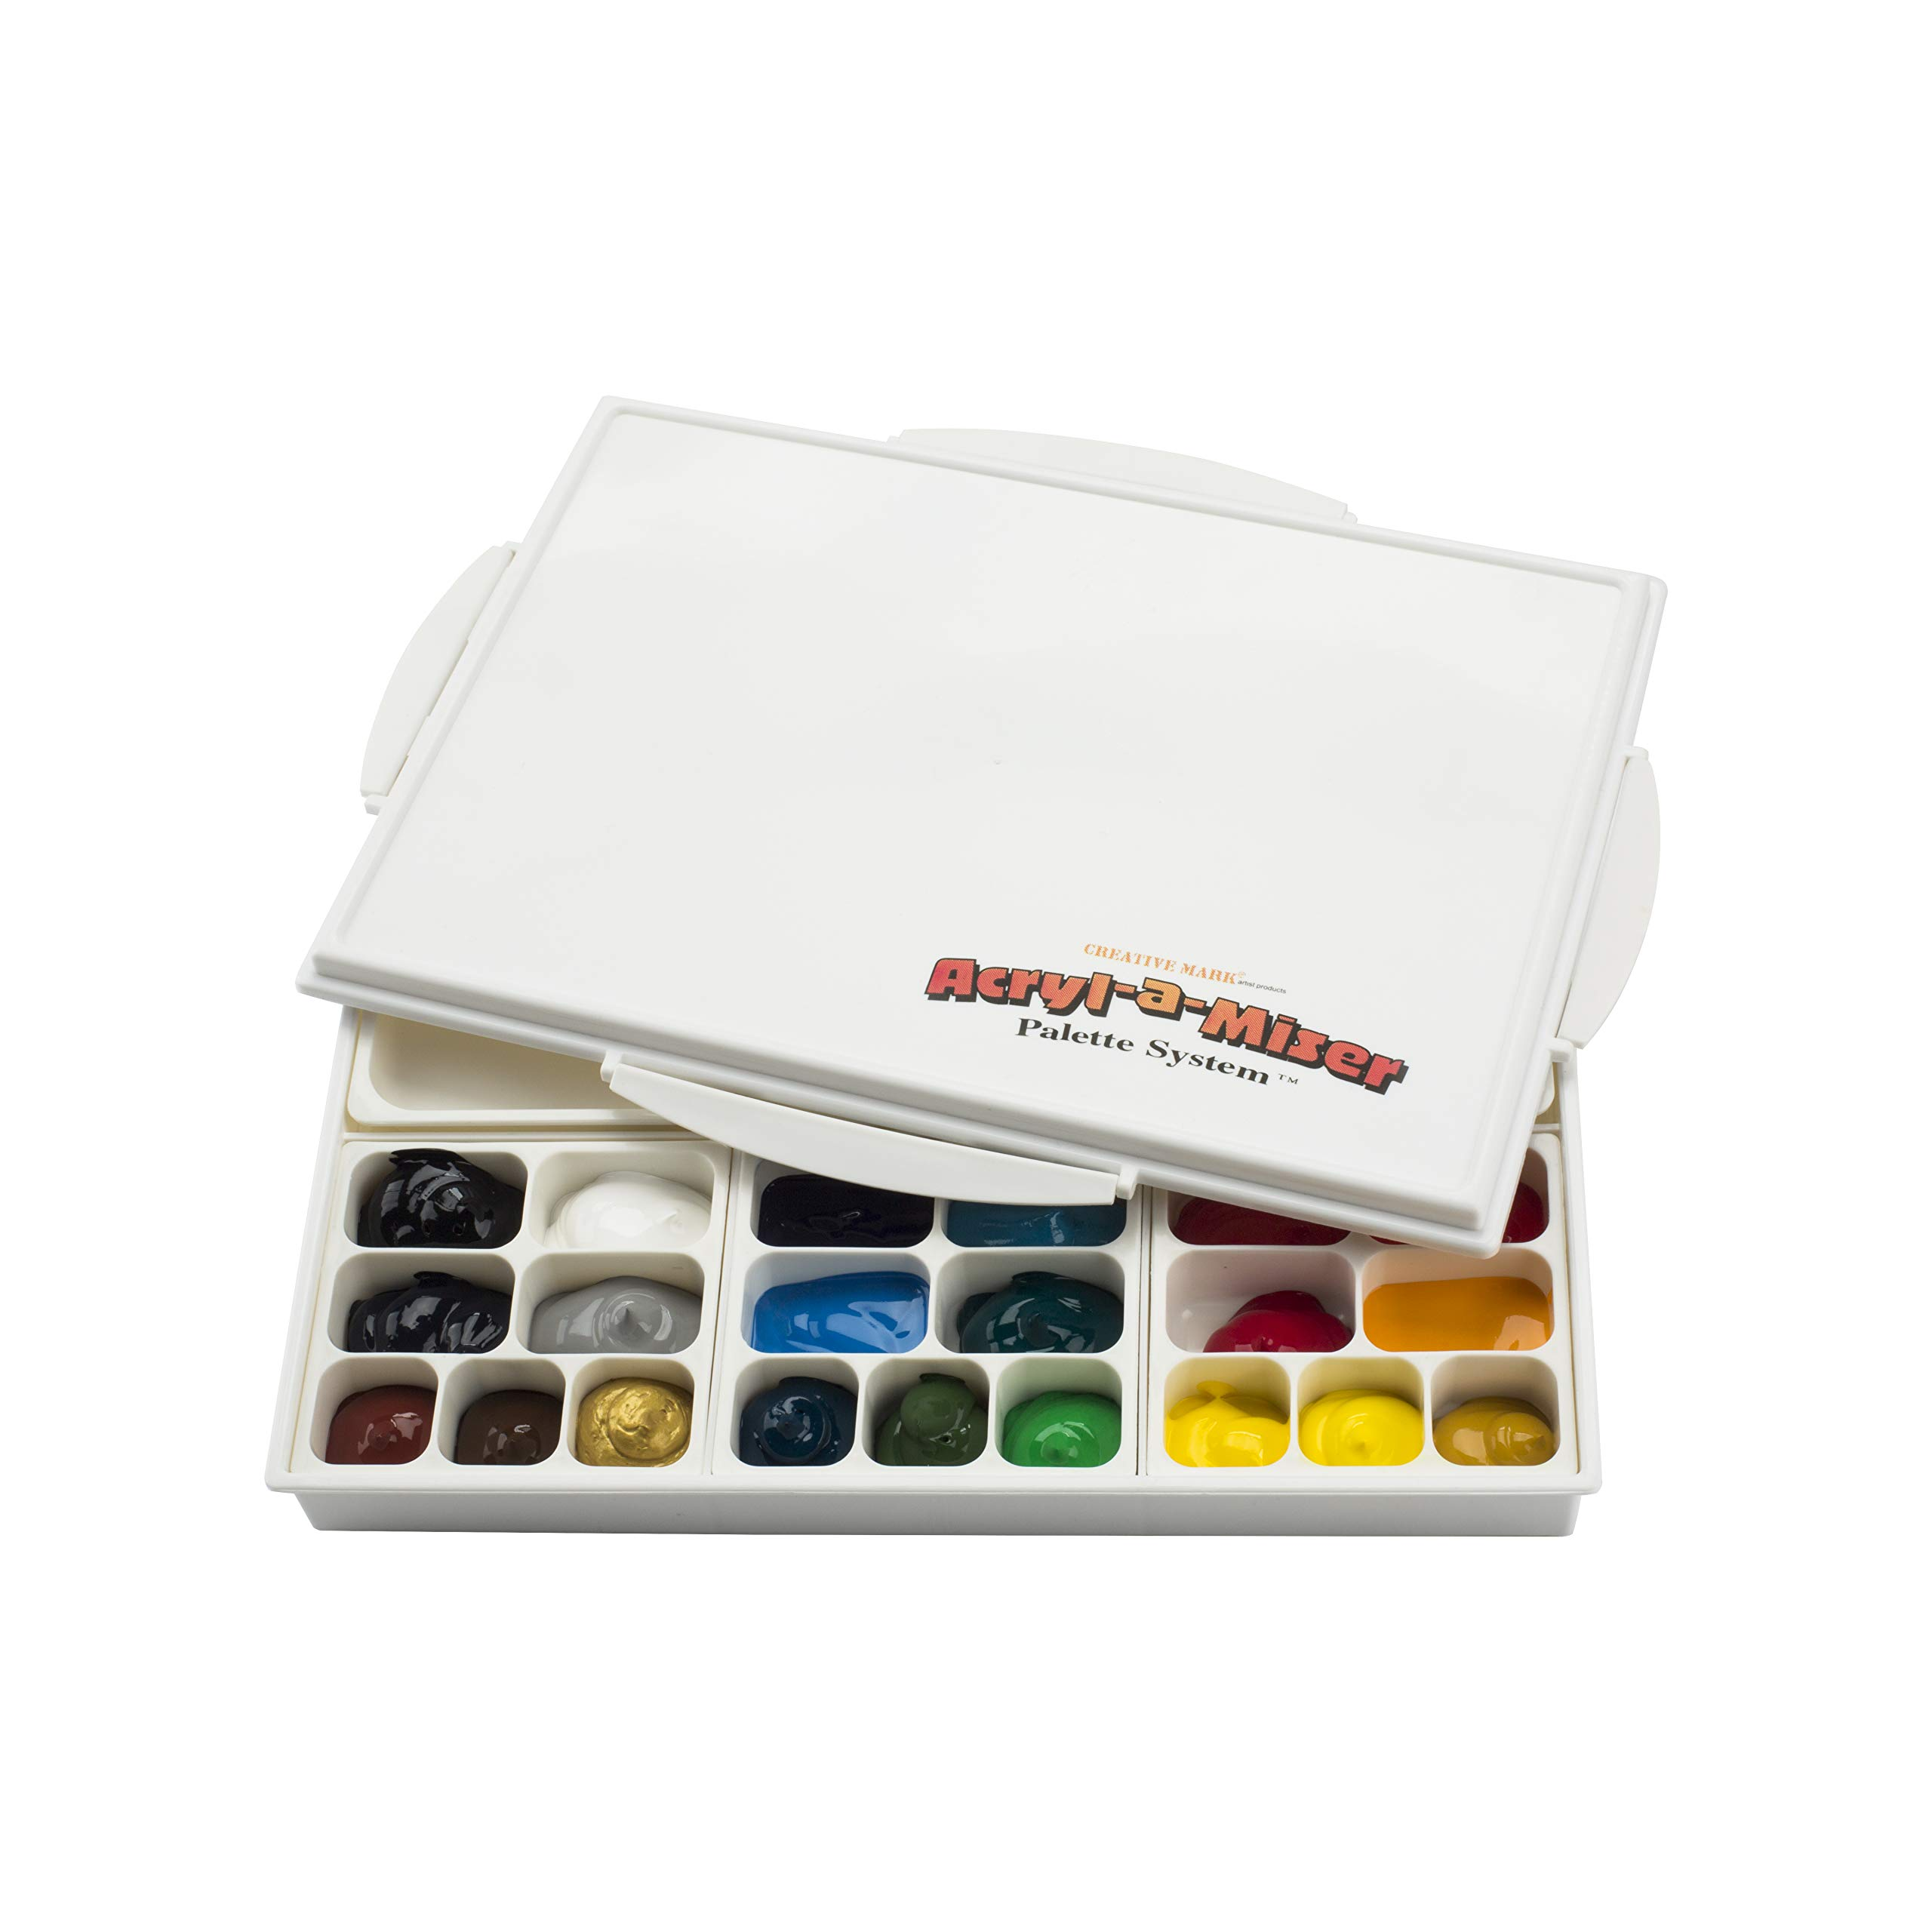 Acryl-A-Miser Artist Airtight Acrylic Palette for Saving Paint - Leak Proof, Multi Purpose, 21 Compartments by Creative Mark